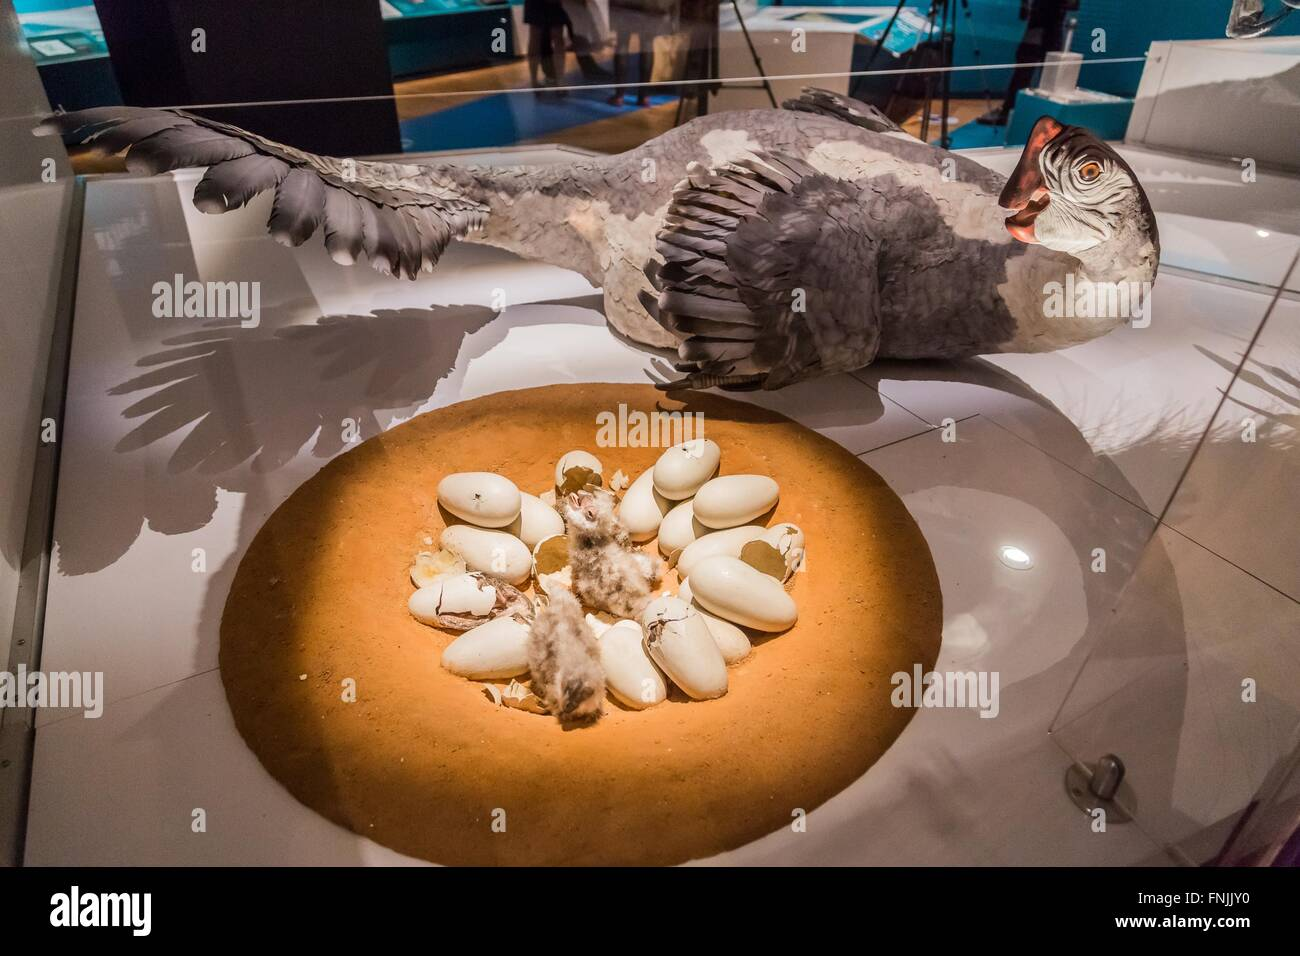 "(160315) -- NEW YORK, March 15, 2016 (Xinhua) -- Photo taken on March 15, 2016 shows the model of the dinosaur ""Citipati Stock Photo"